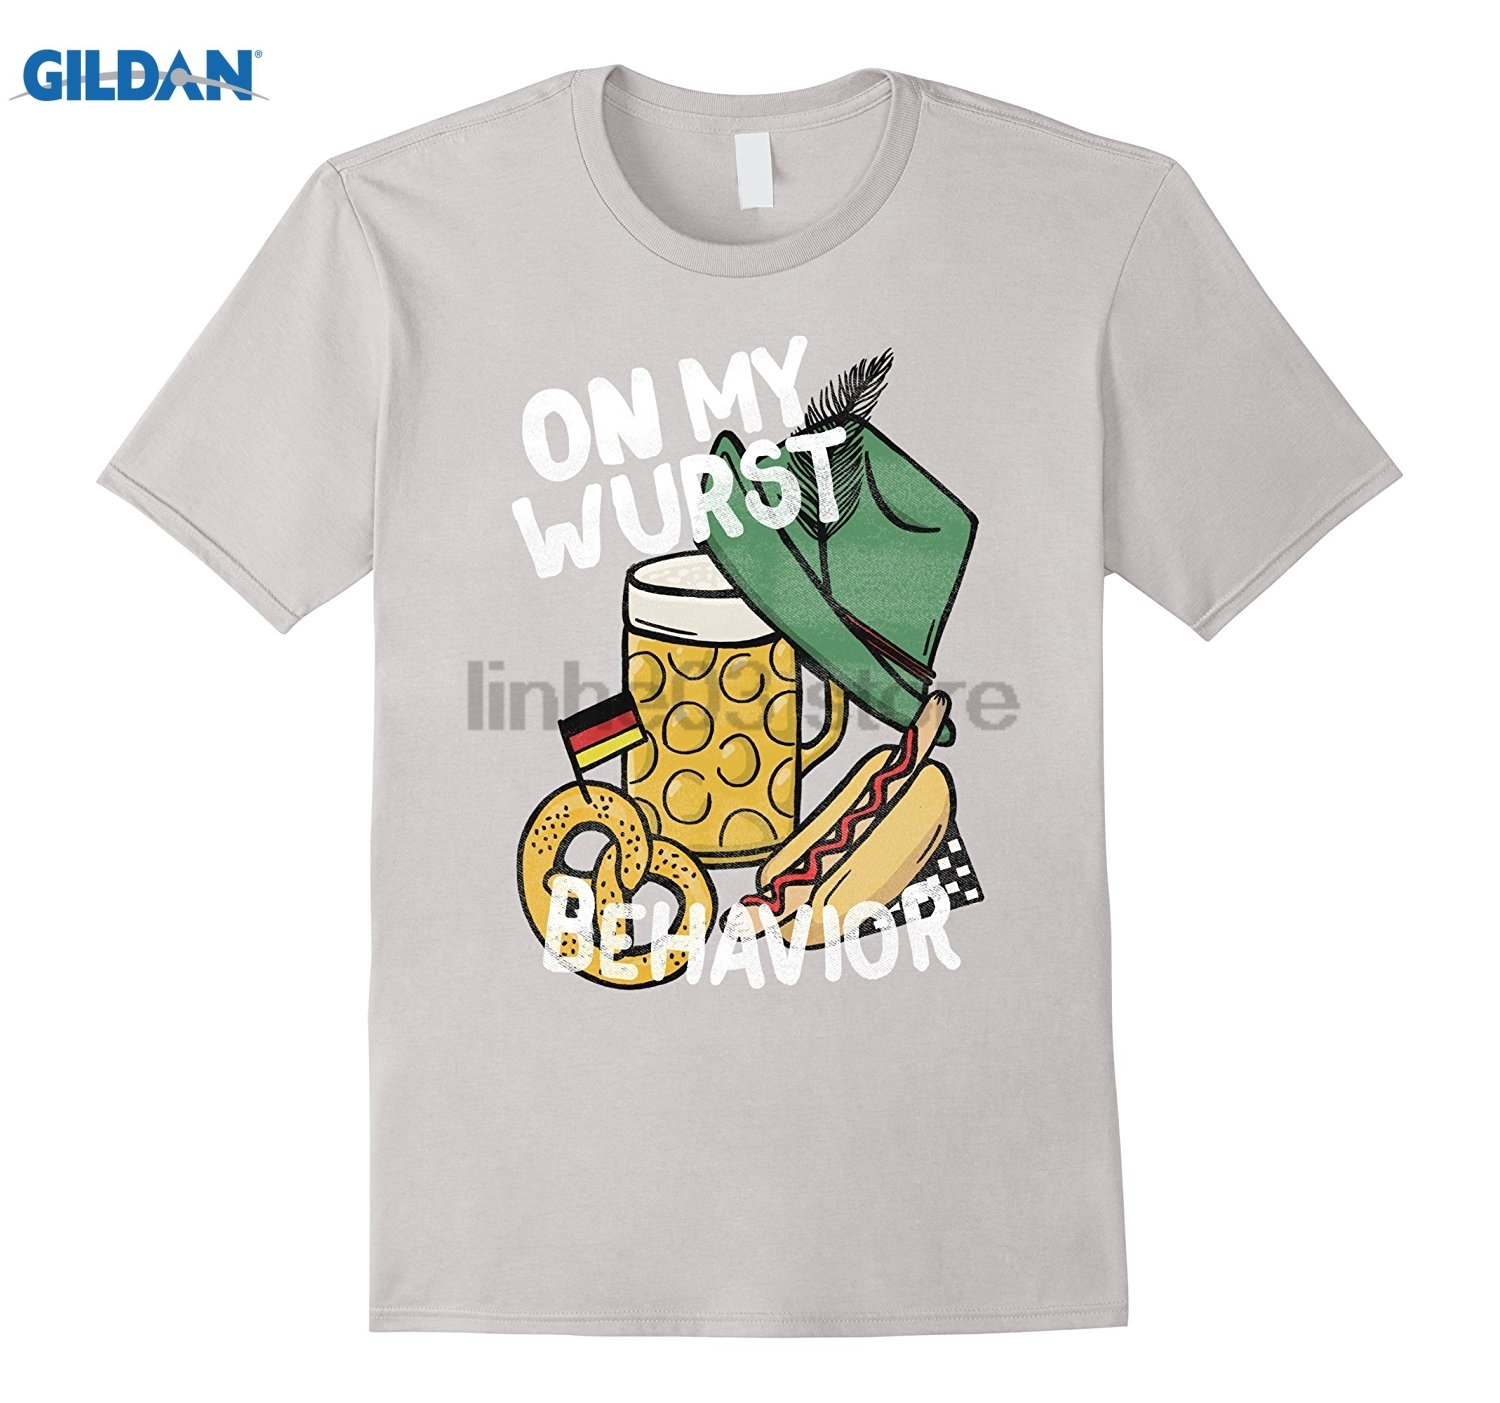 GILDAN Oktoberfest Shirt - On My Wurst Behavior German Beer Tee Womens T-shirt